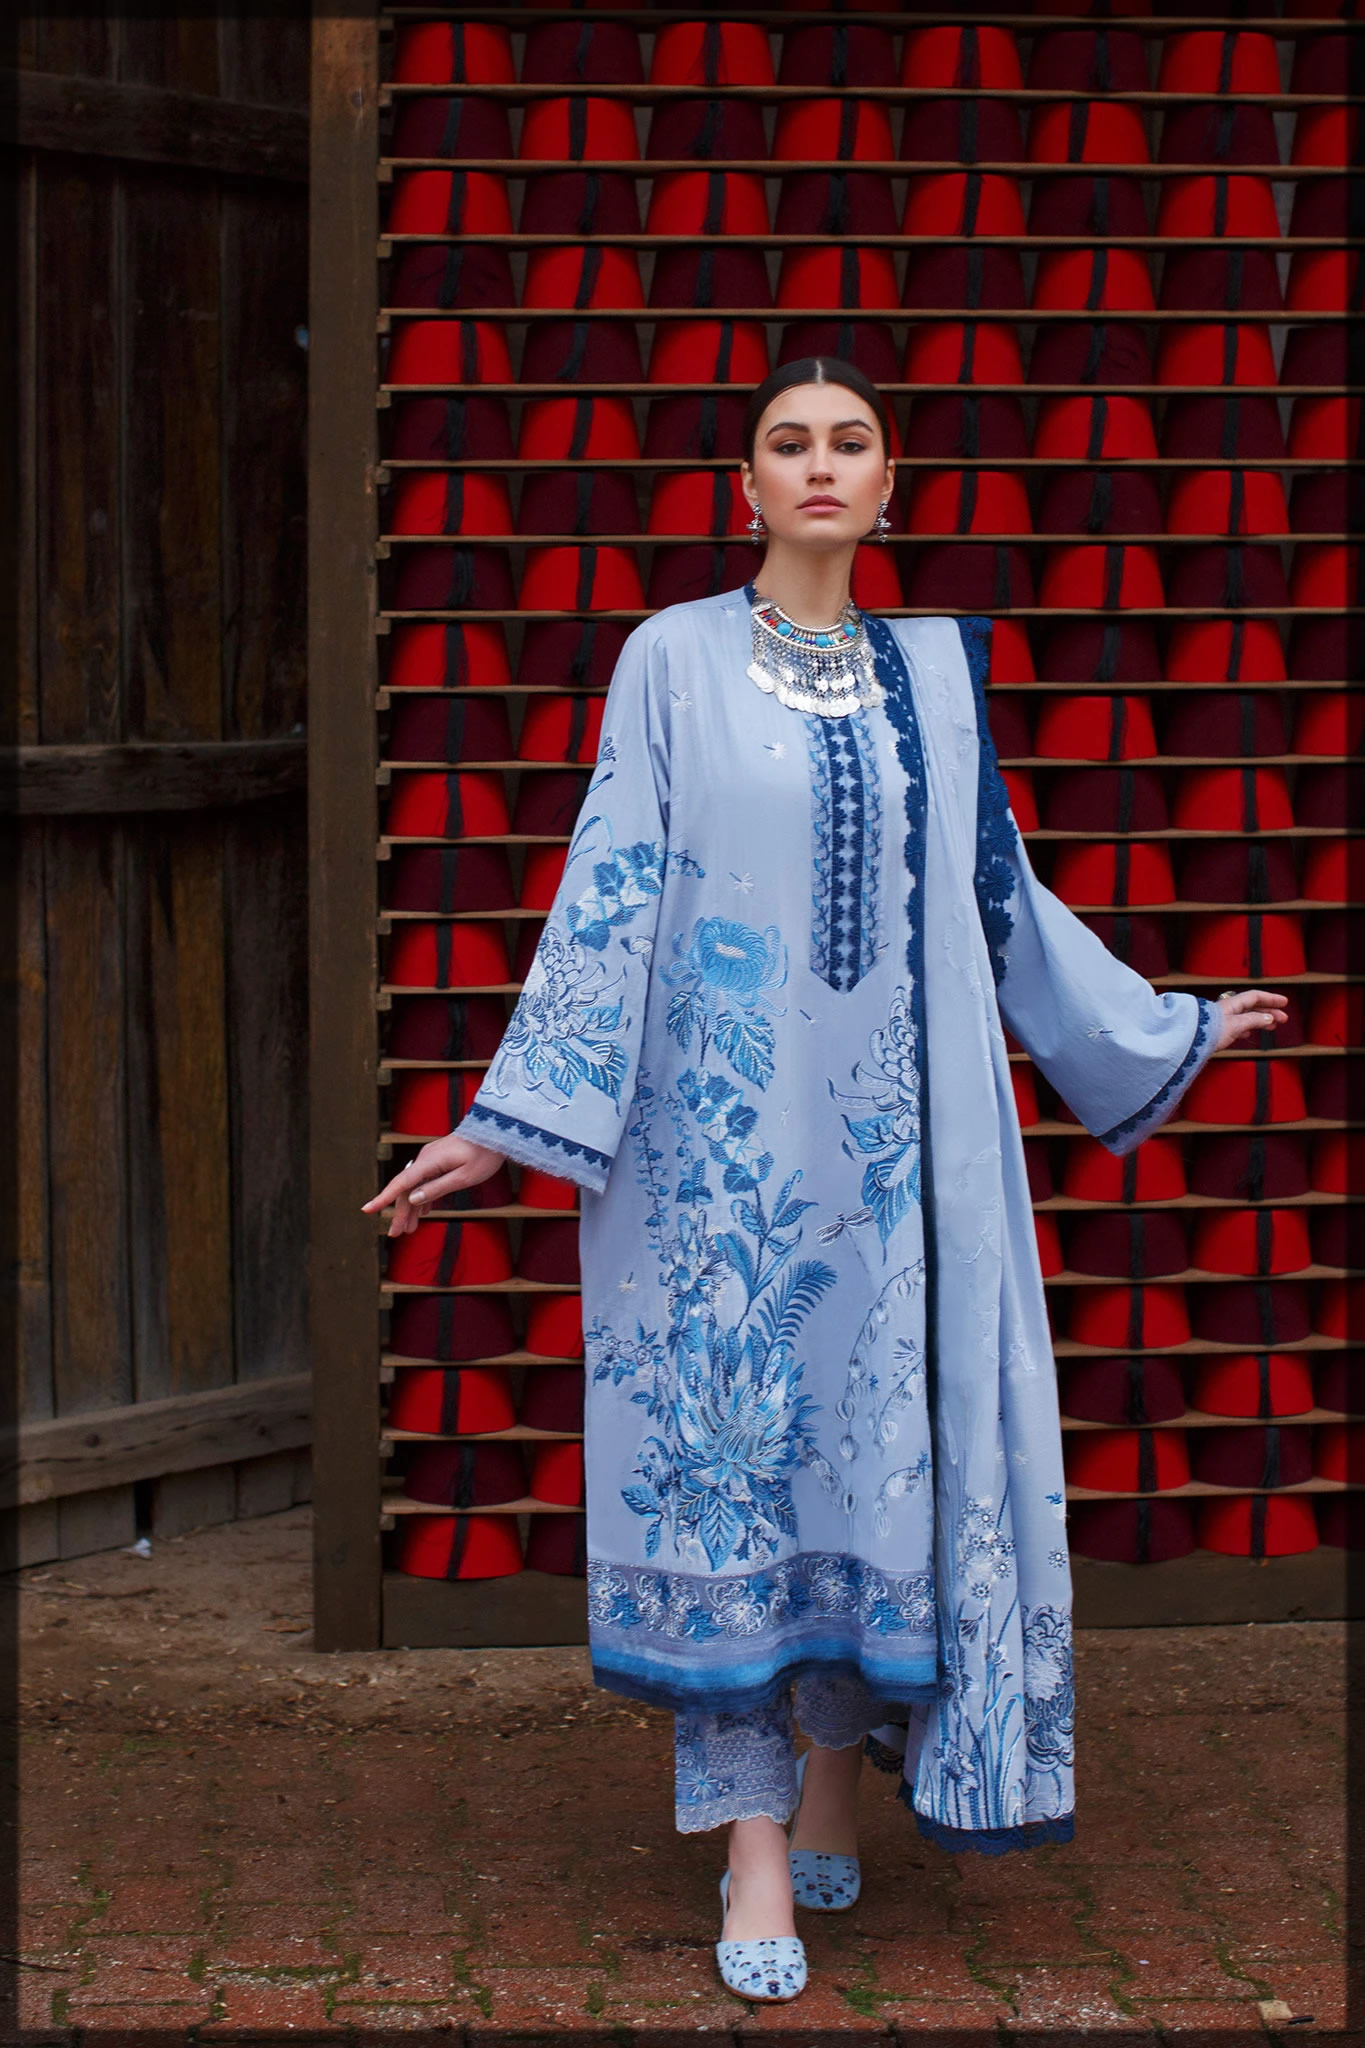 classic wedgewood blue embroidered dress